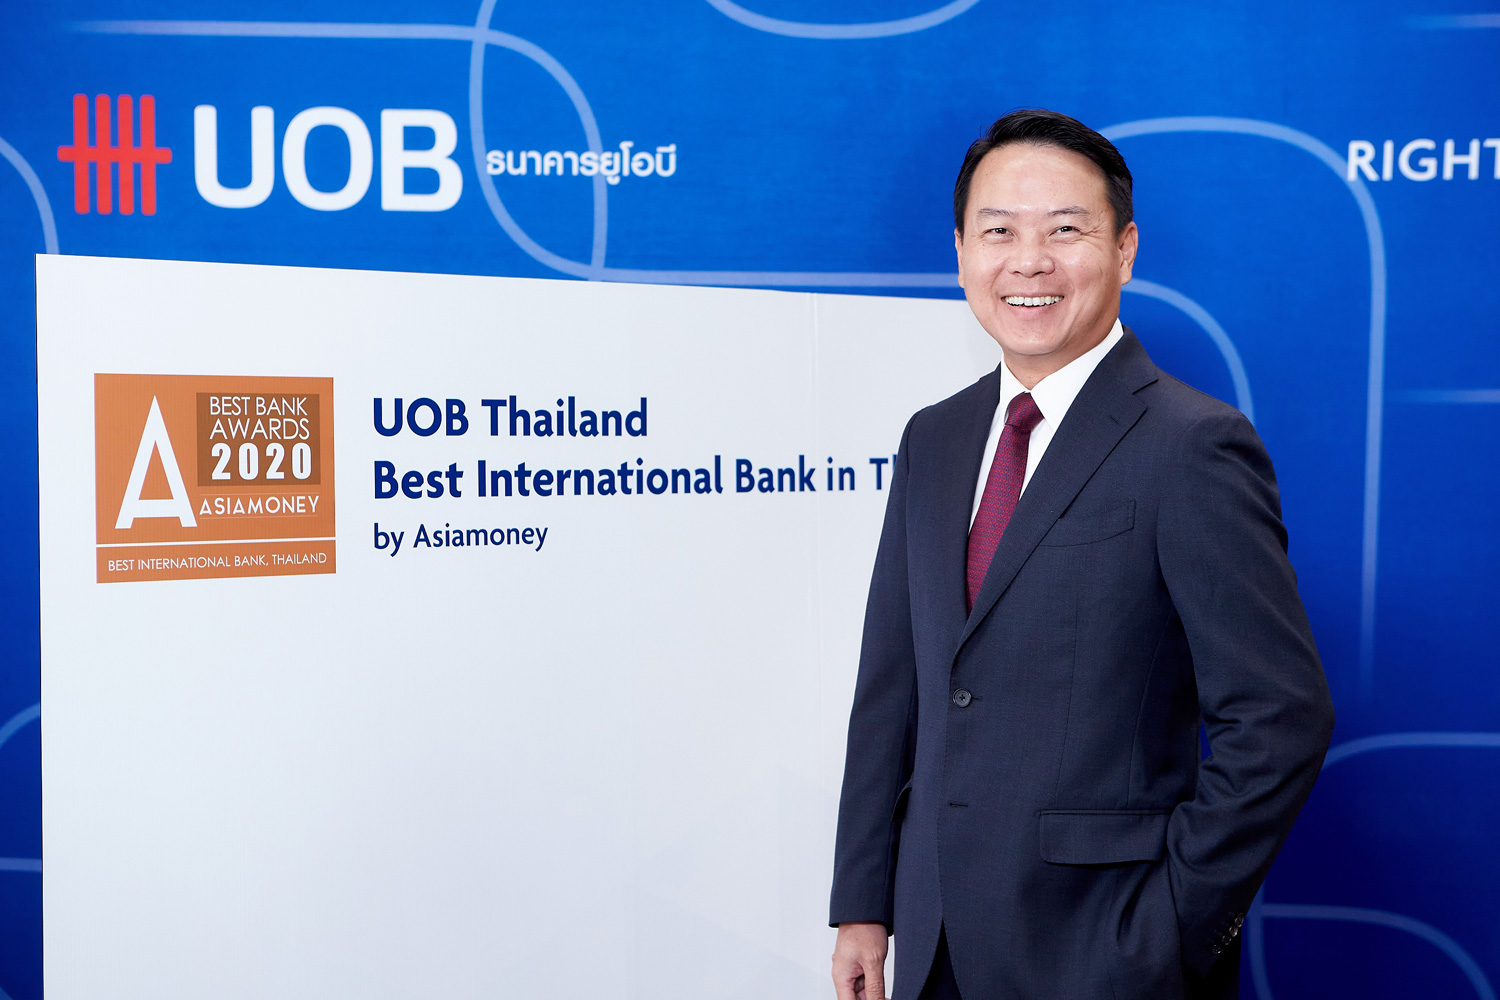 UOB Thailand named Thailand's Best International Bank 2020  at the Asiamoney Best Bank Awards